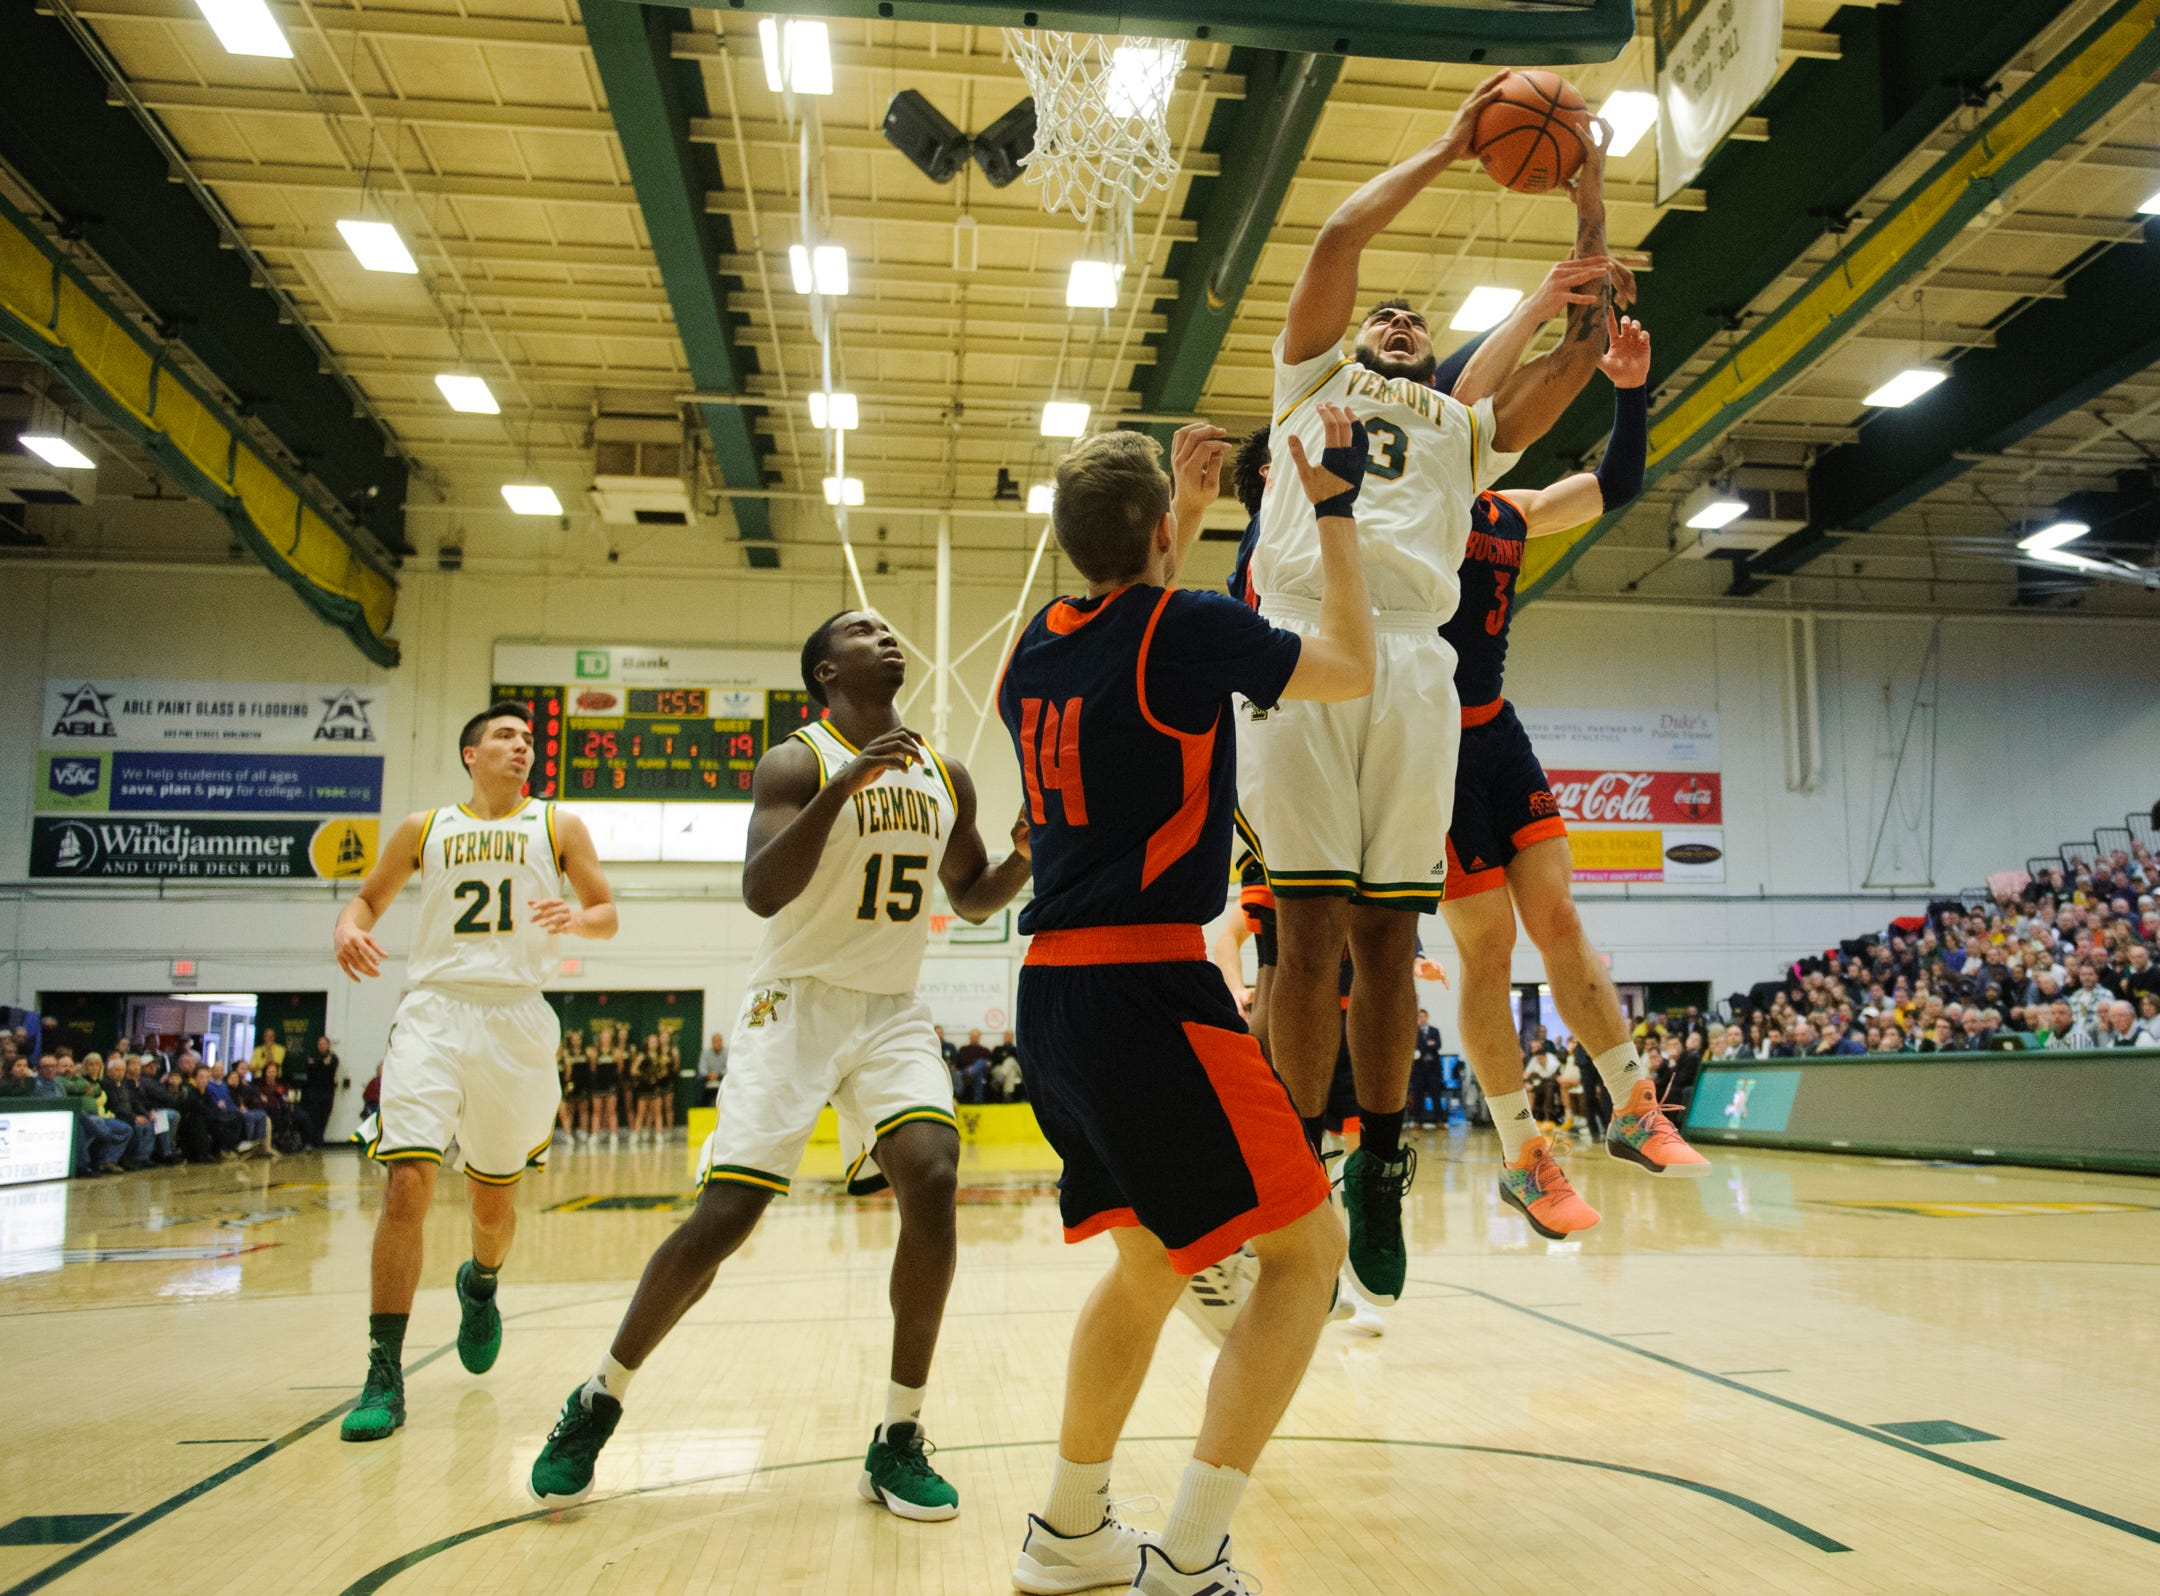 Vermont forward Anthony Lamb (3) leaps for a lay up during the men's basketball game between the Bucknell Bison and the Vermont Catamounts at Patrick Gym on Sunday afternoon November 25, 2018 in Burlington.